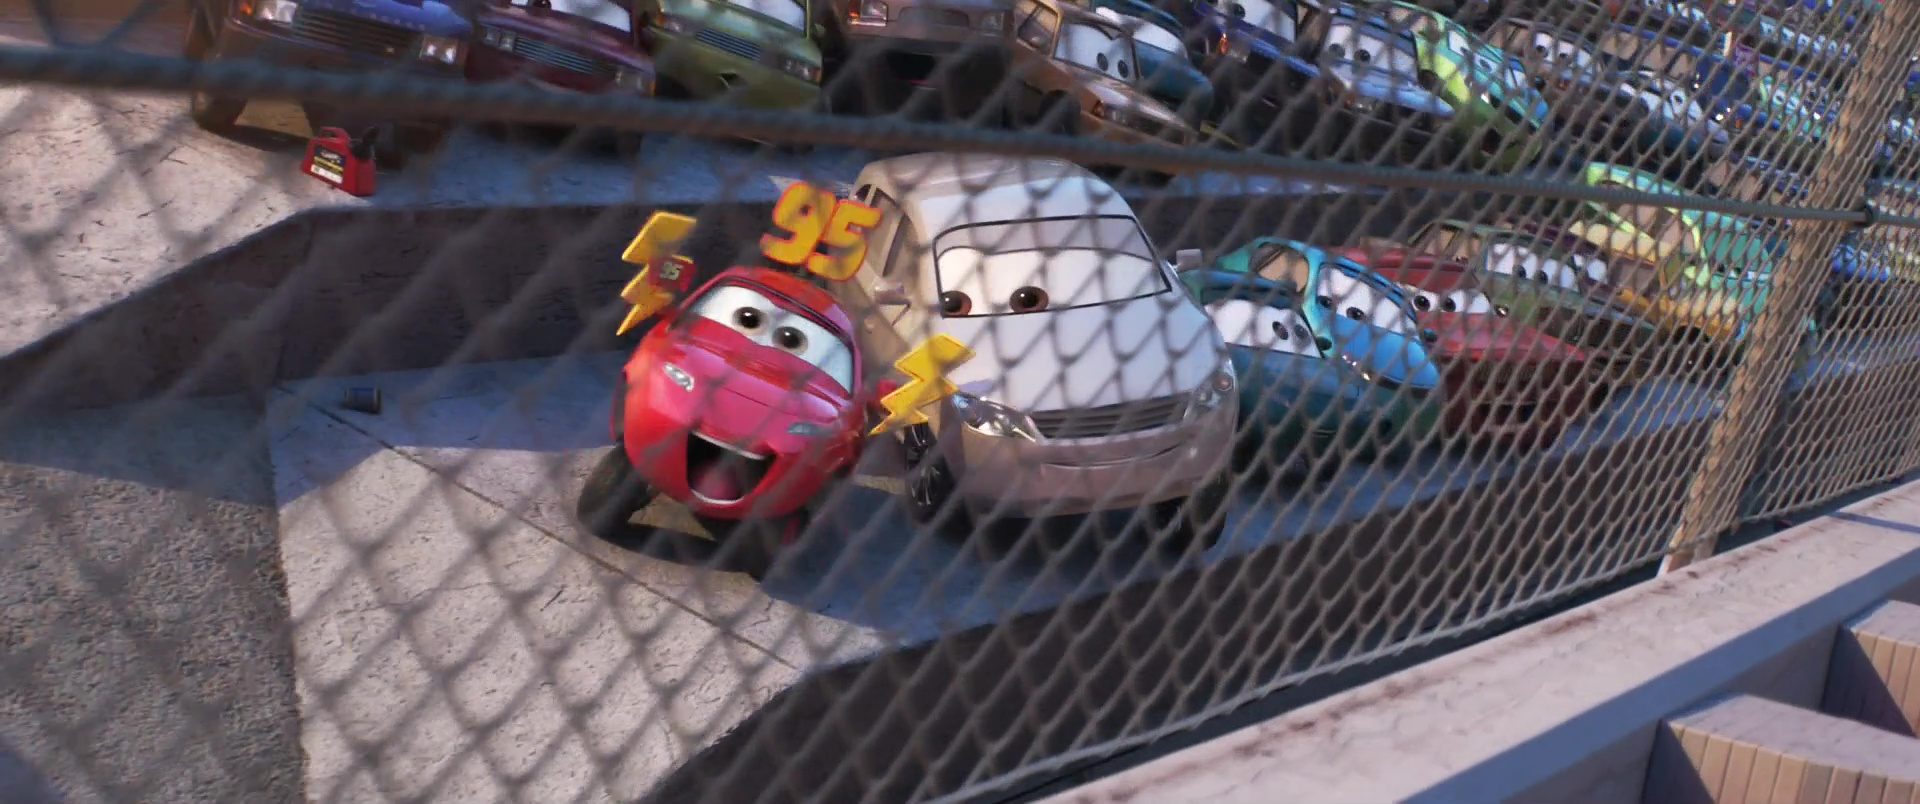 mere-maddy-mcgear-personnage-cars-3-01